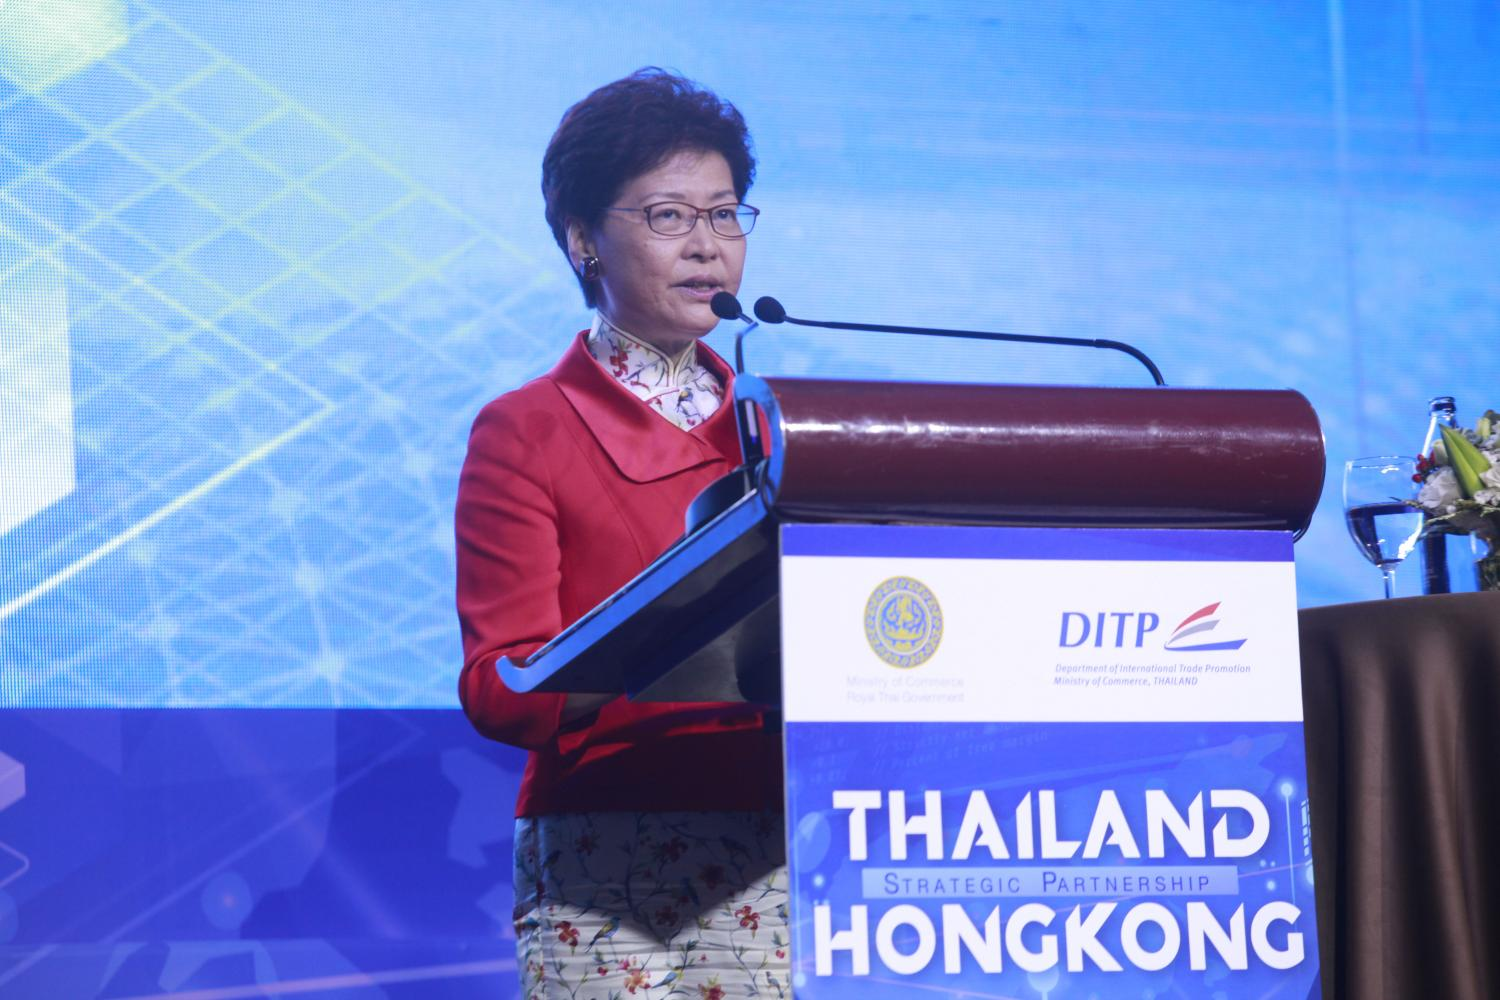 Hong Kong chief executive Carrie Lam speaks at the Thailand-Hong Kong Strategic Partnership event held in February. Ms Lam plans to call on Prime Minister Prayut Chan-o-cha Friday evening. Pornprom Satrabhaya